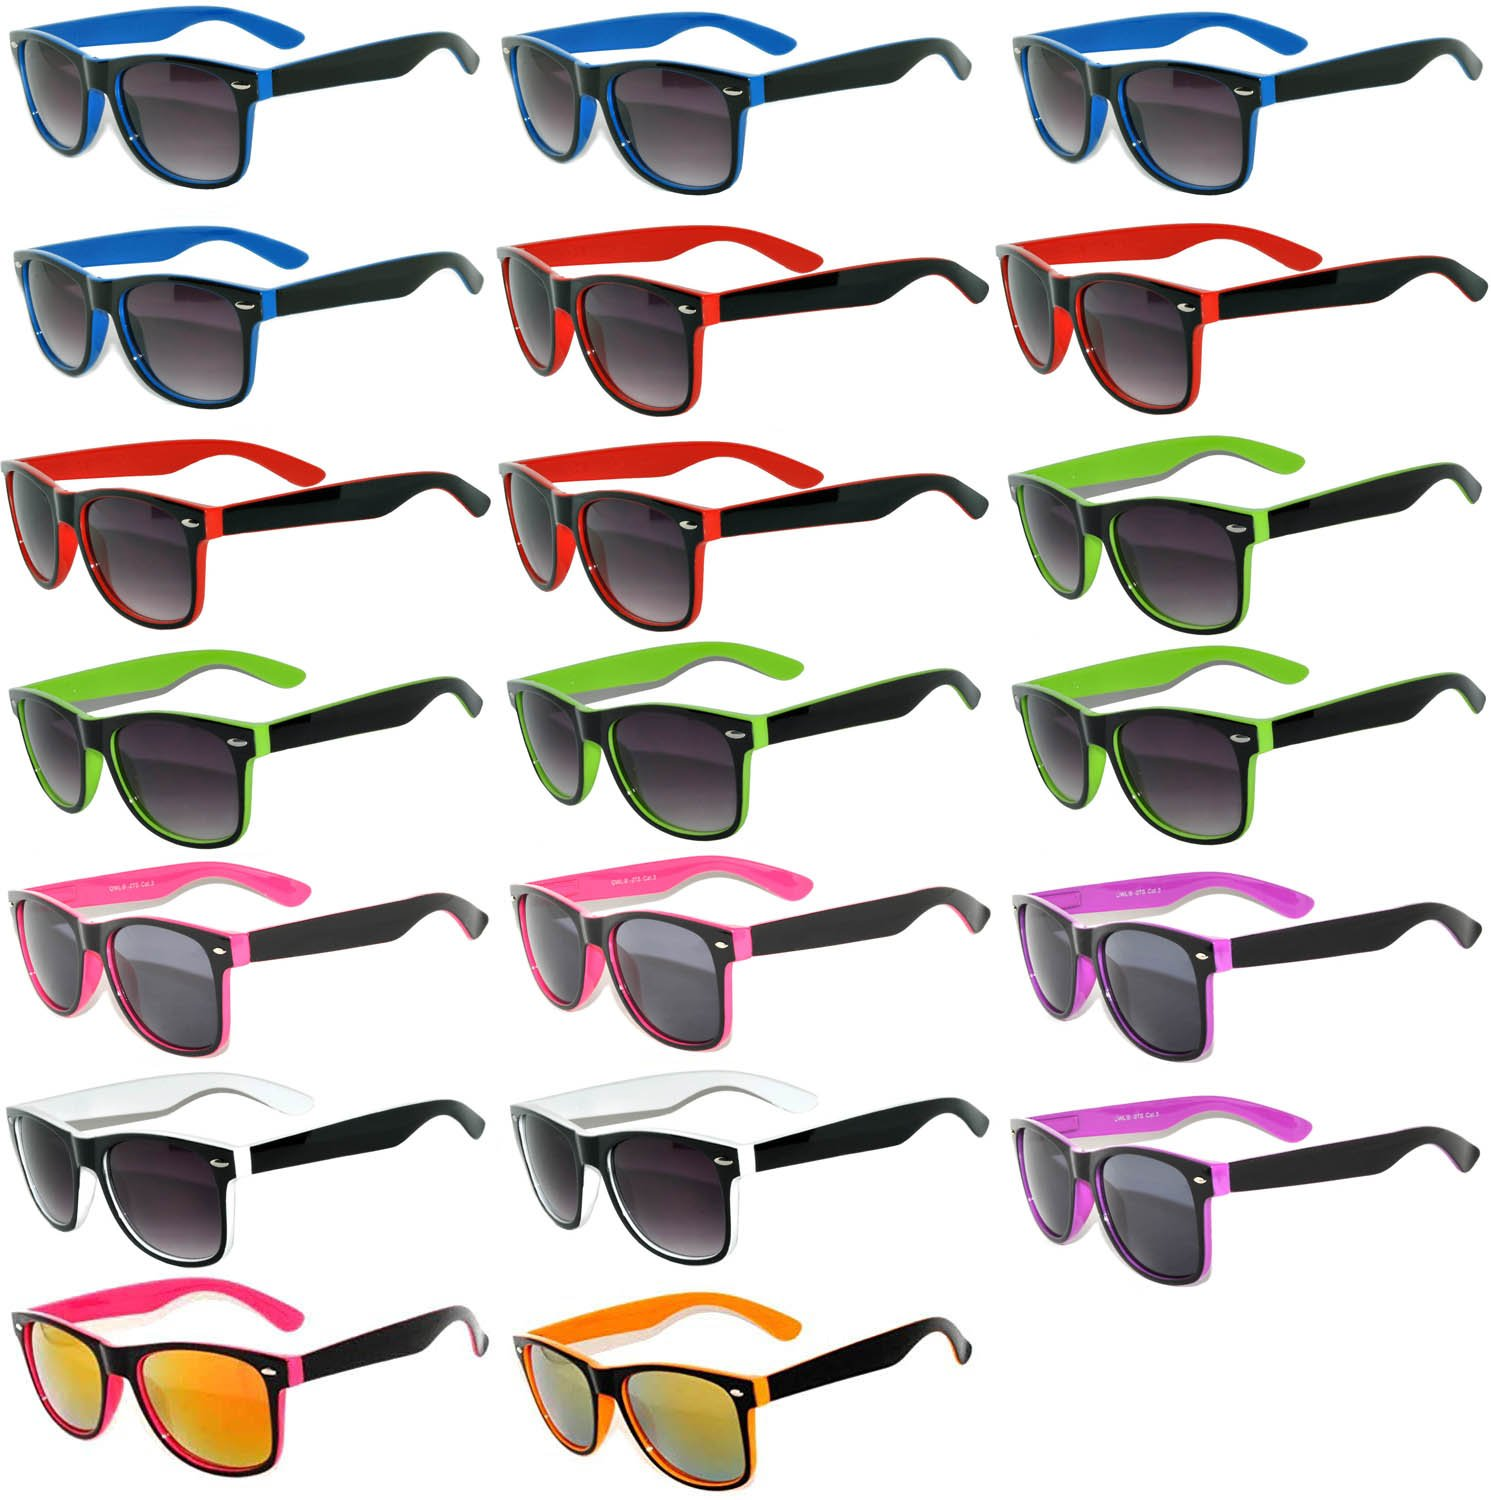 0b36e7d1dda Assorted Colored Frame Fashion Sunglasses.Bulk Sunglasses - Wholesale Bulk  Party Glasses